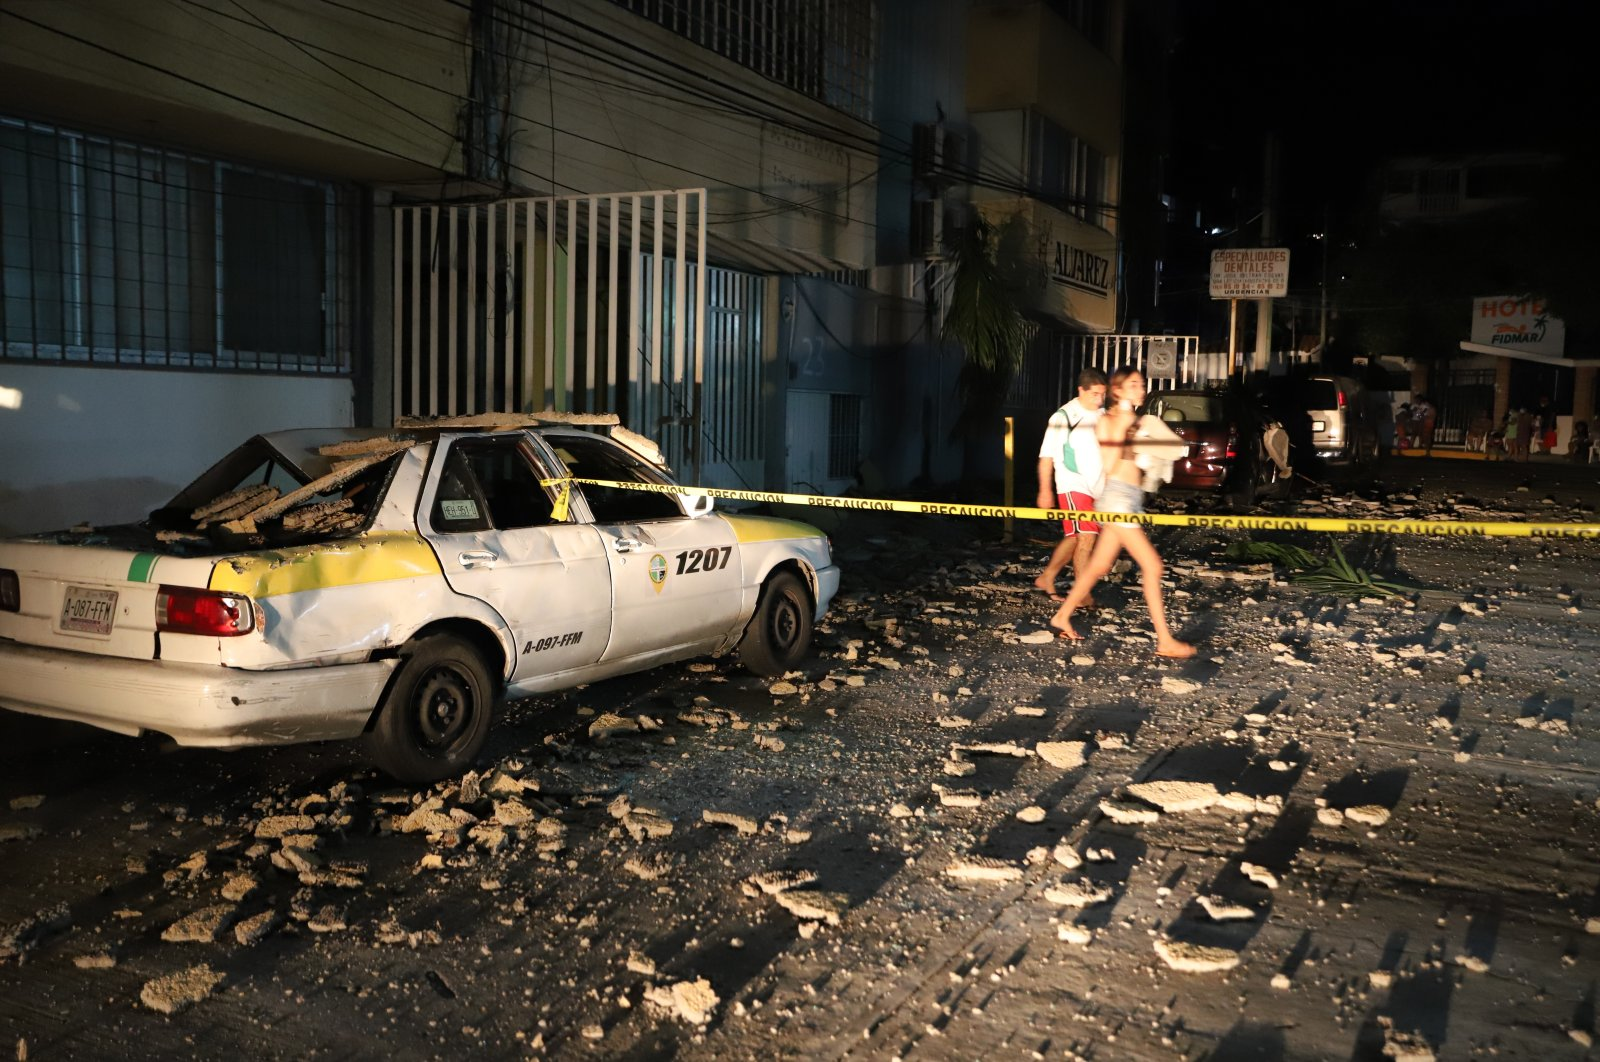 A couple walks past a taxi cab that was damaged by falling debris after a strong earthquake in Acapulco, Mexico, Sept. 7, 2021. (AP Photo)